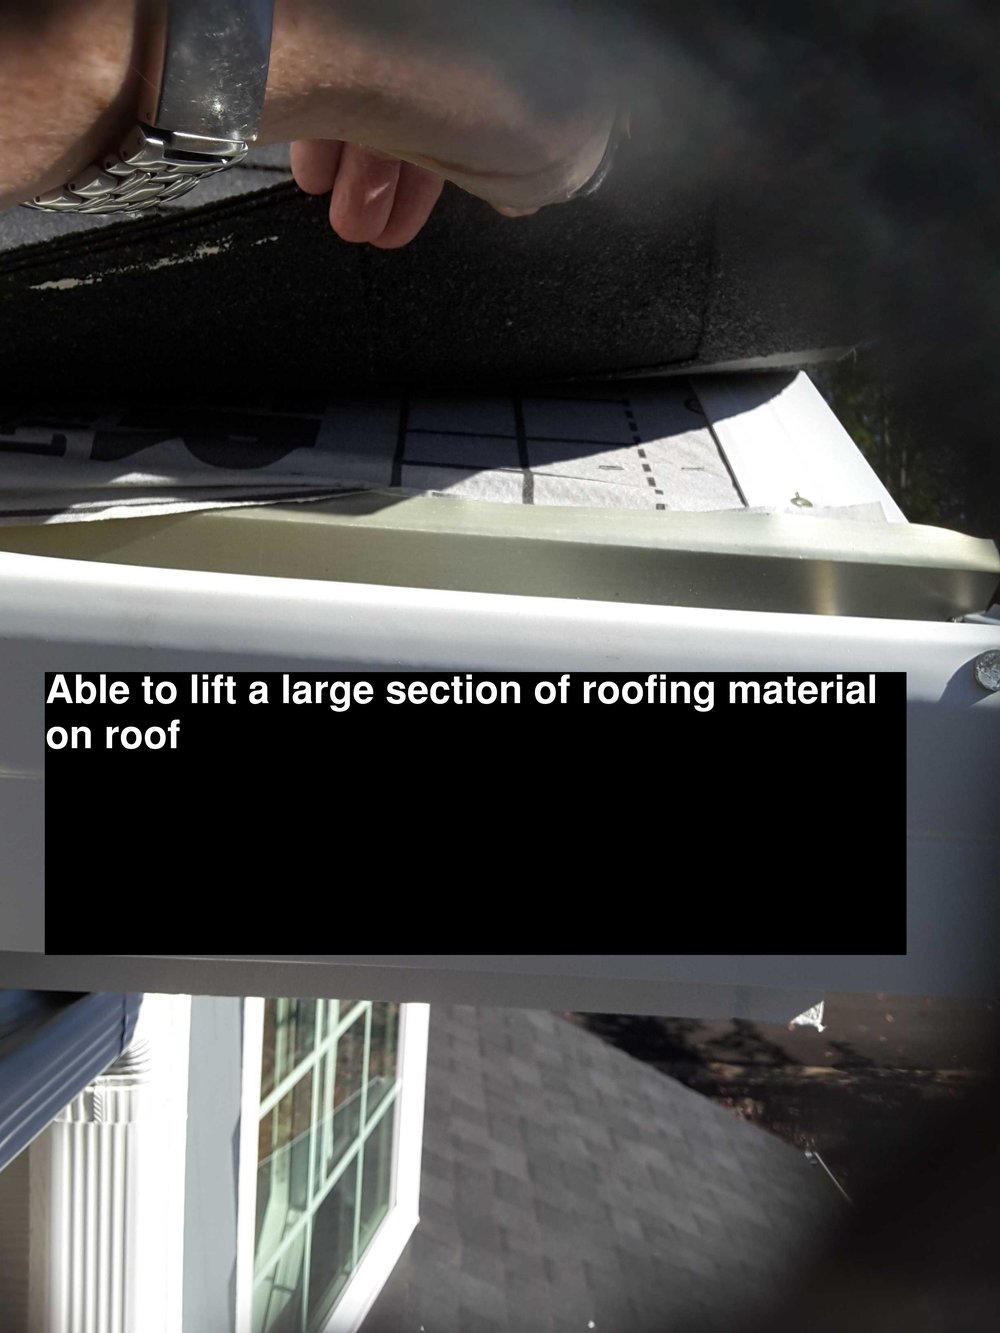 Asphalt Shingle Tab - I was able to lift the whole tab, brand new roof